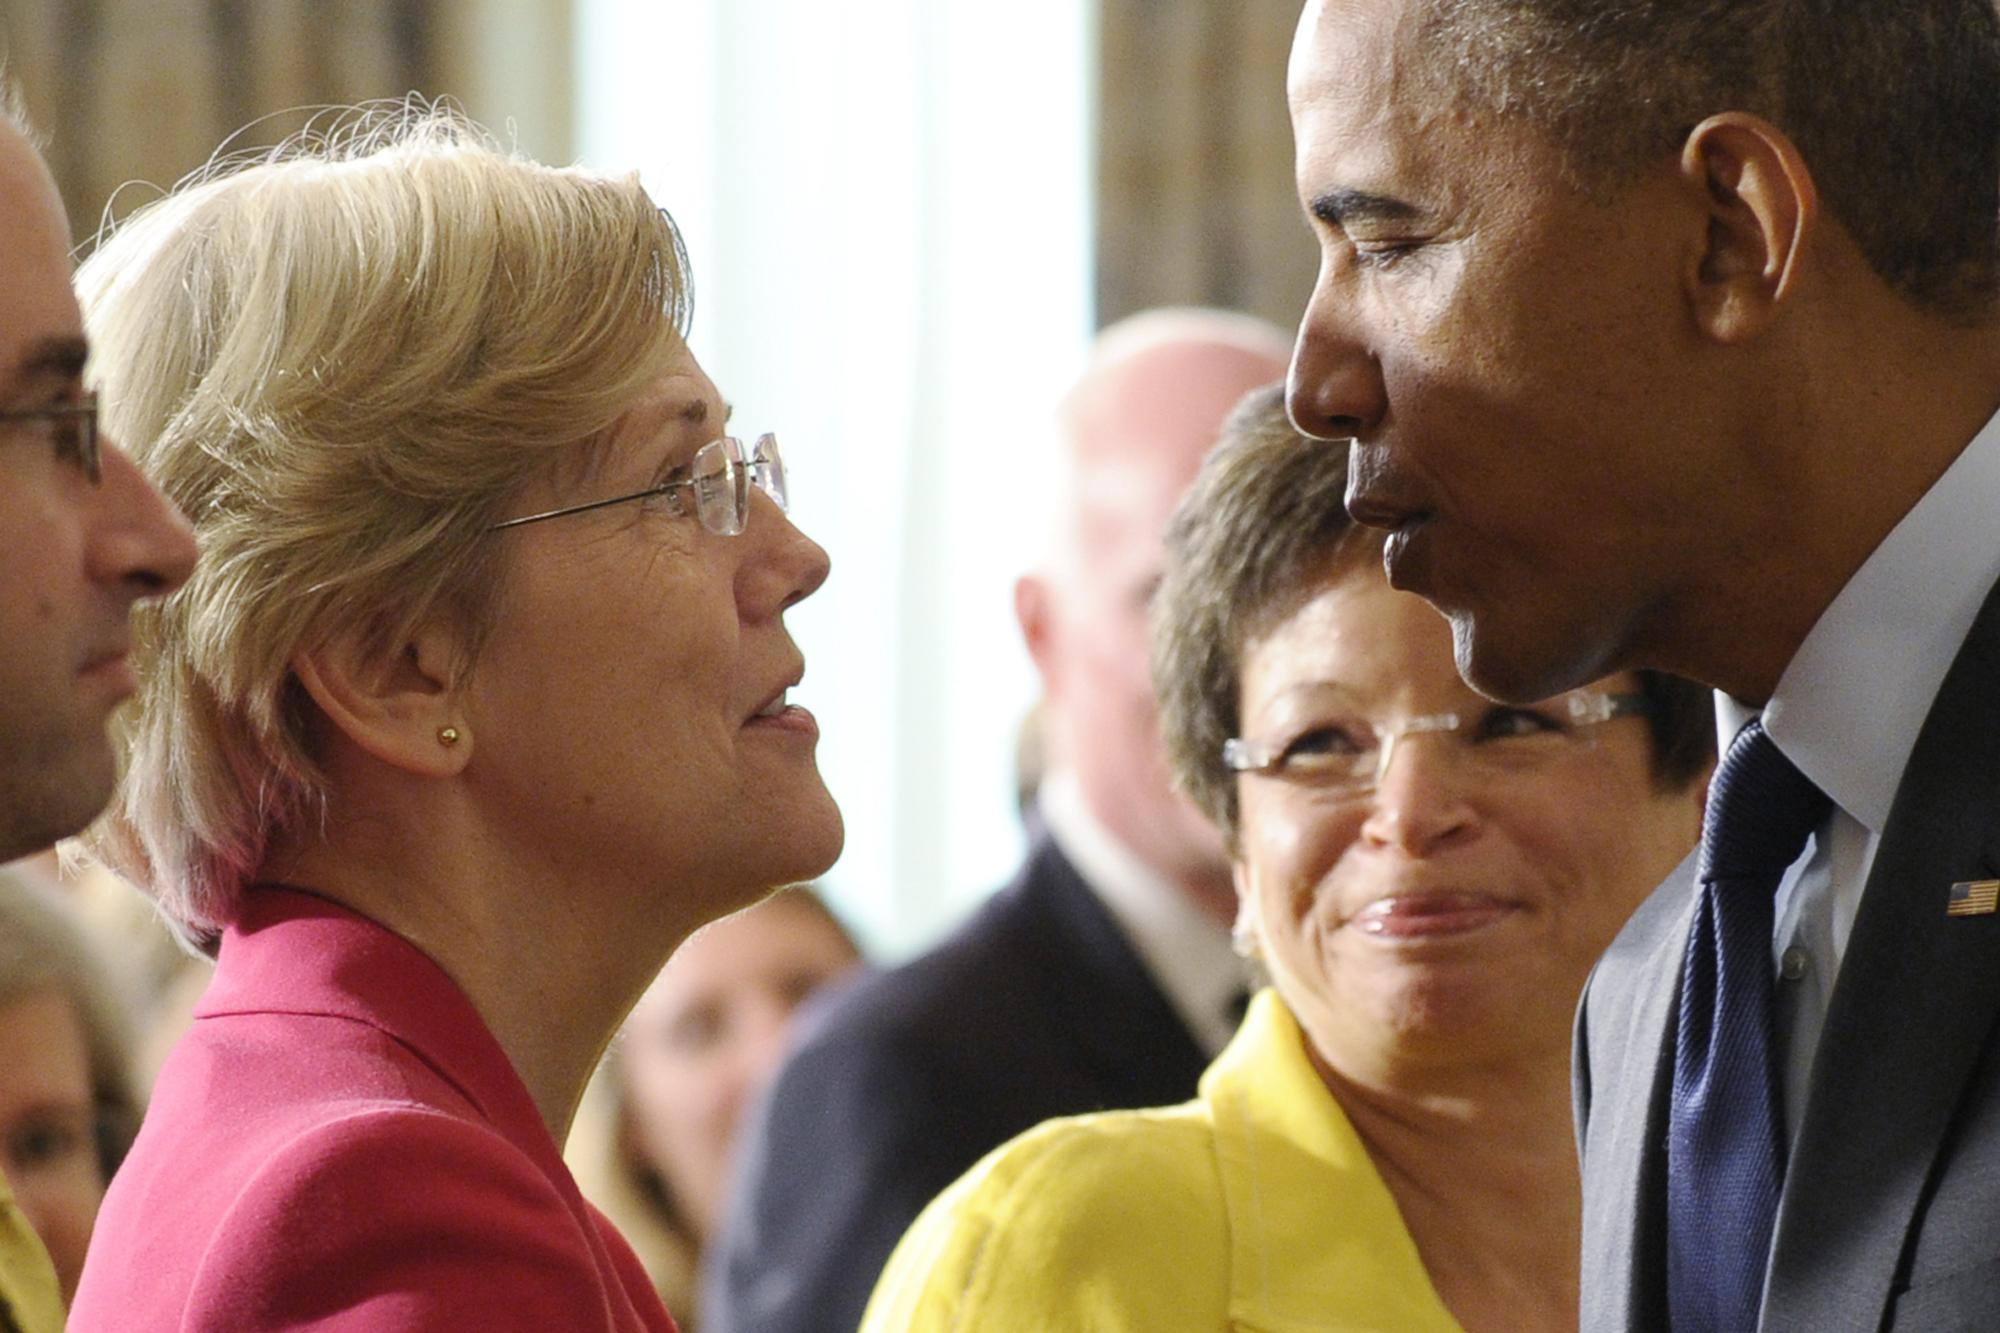 Obama ditching Hillary for 'Mini-Me' Elizabeth Warren: Edward Klein